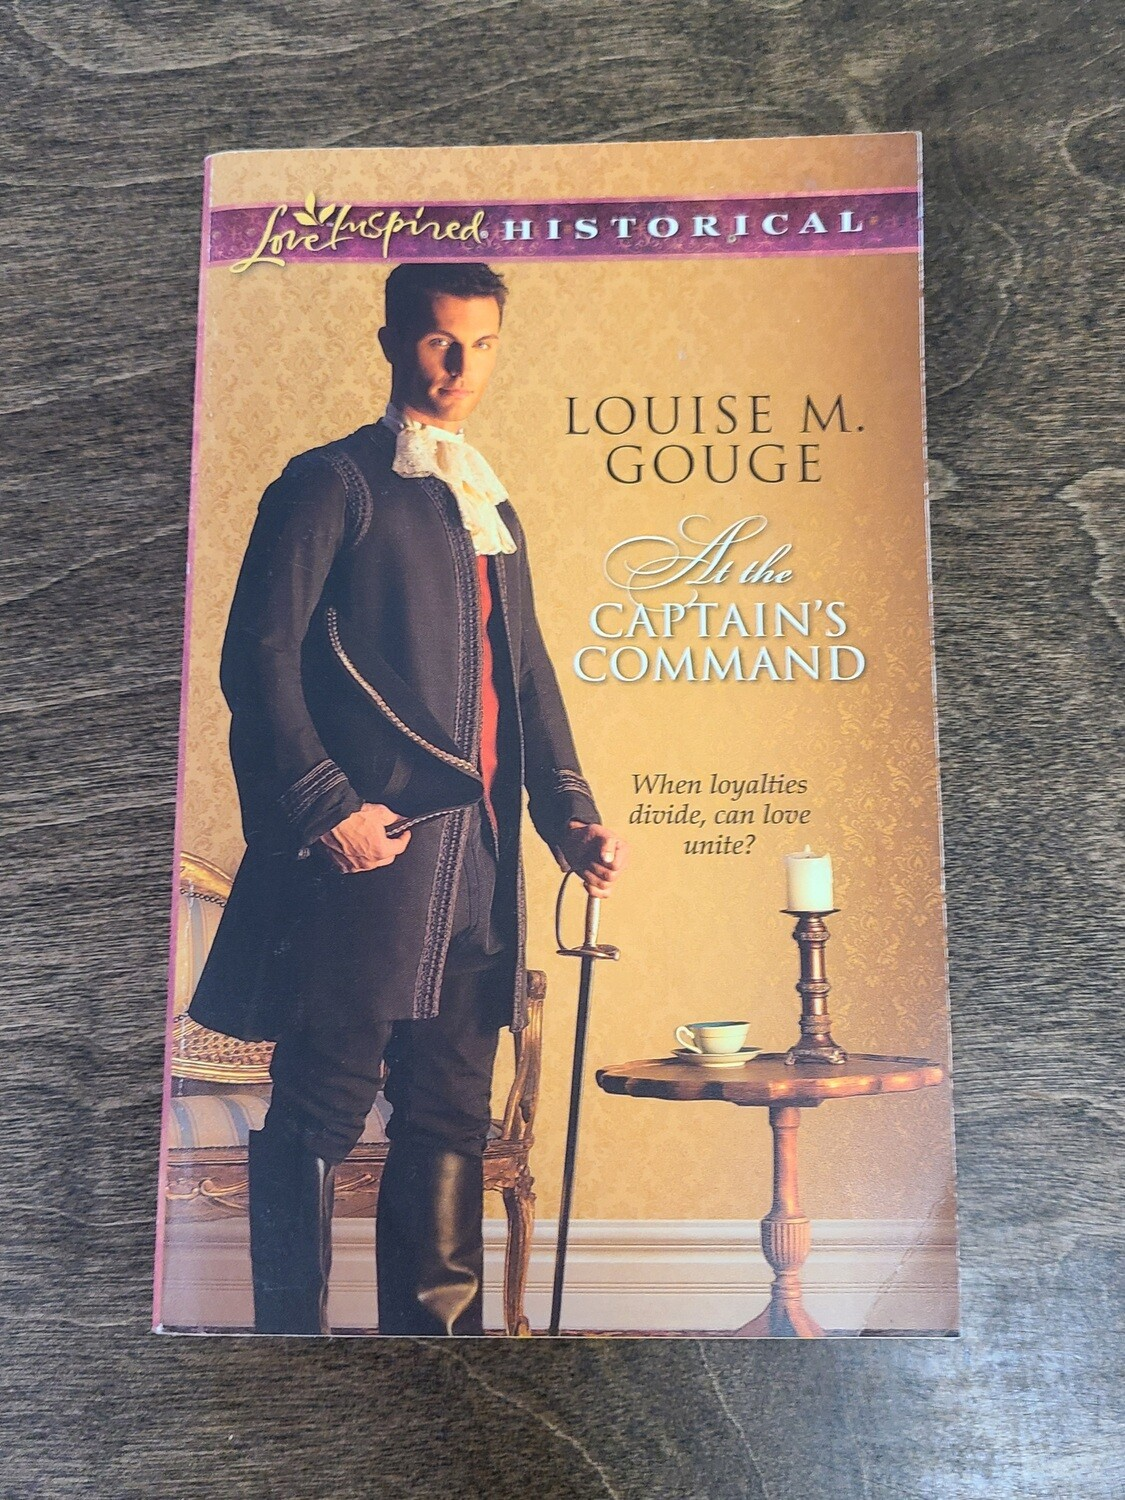 At The Captain's Command by Louise M. Gouge